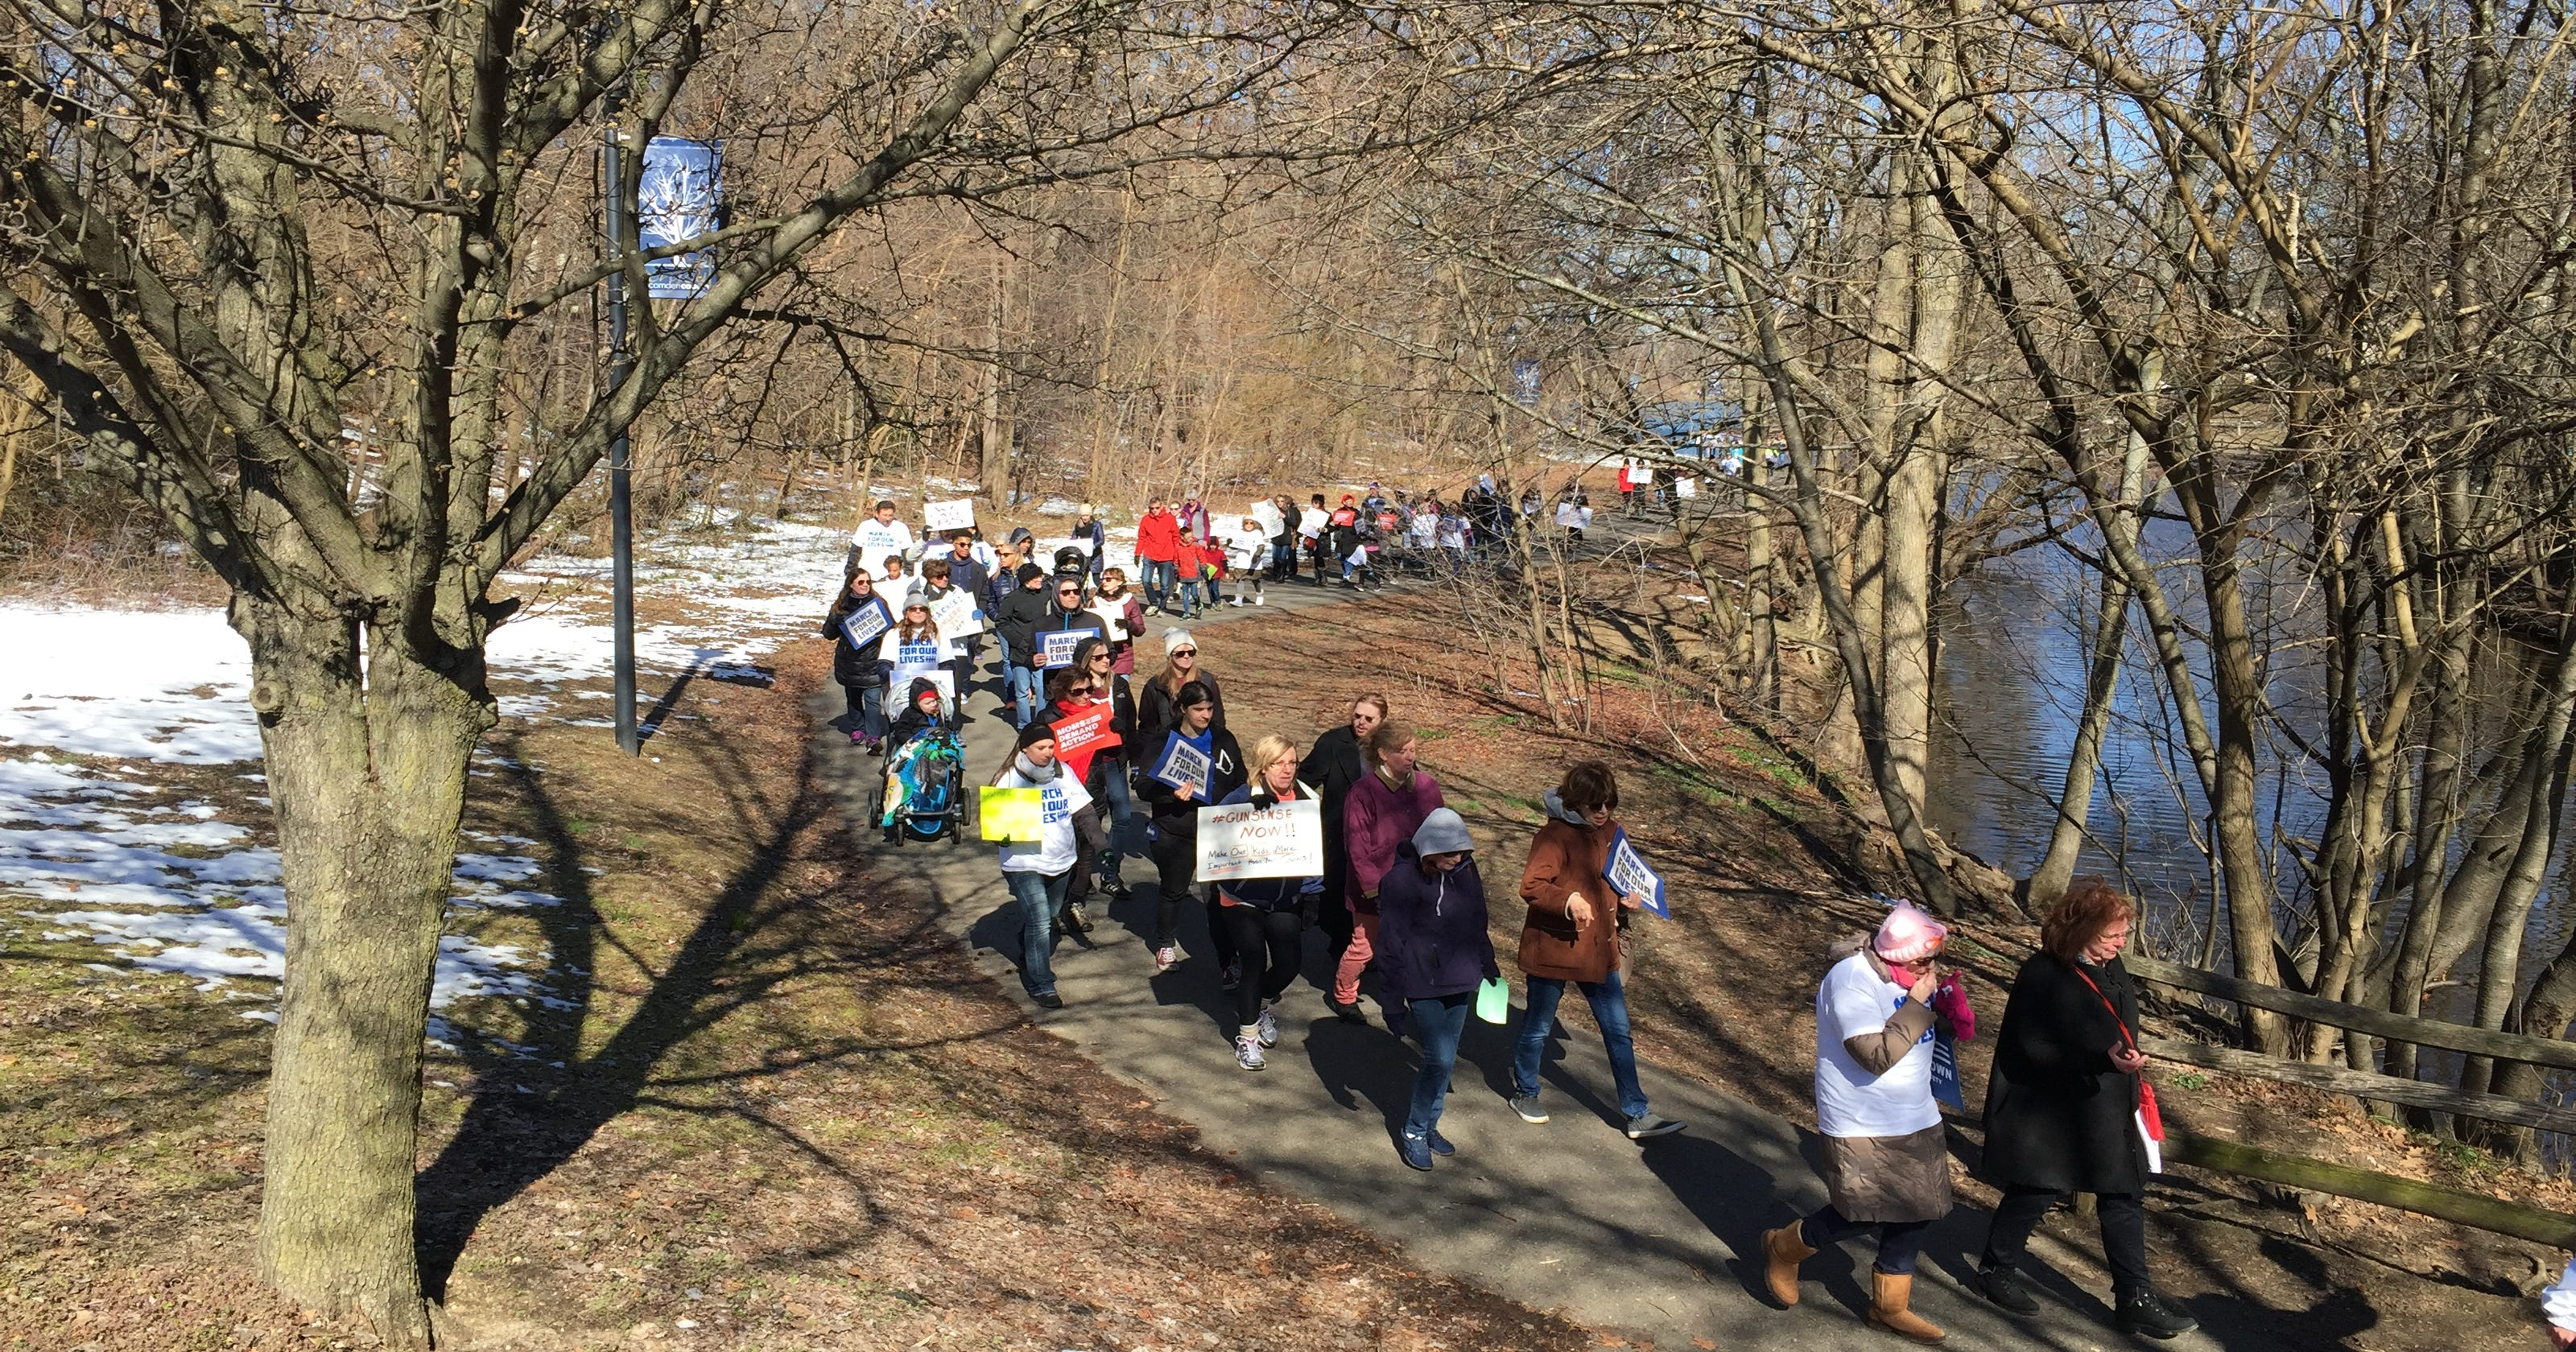 Organizers: Nearly 1,000 turn out for South Jersey March For